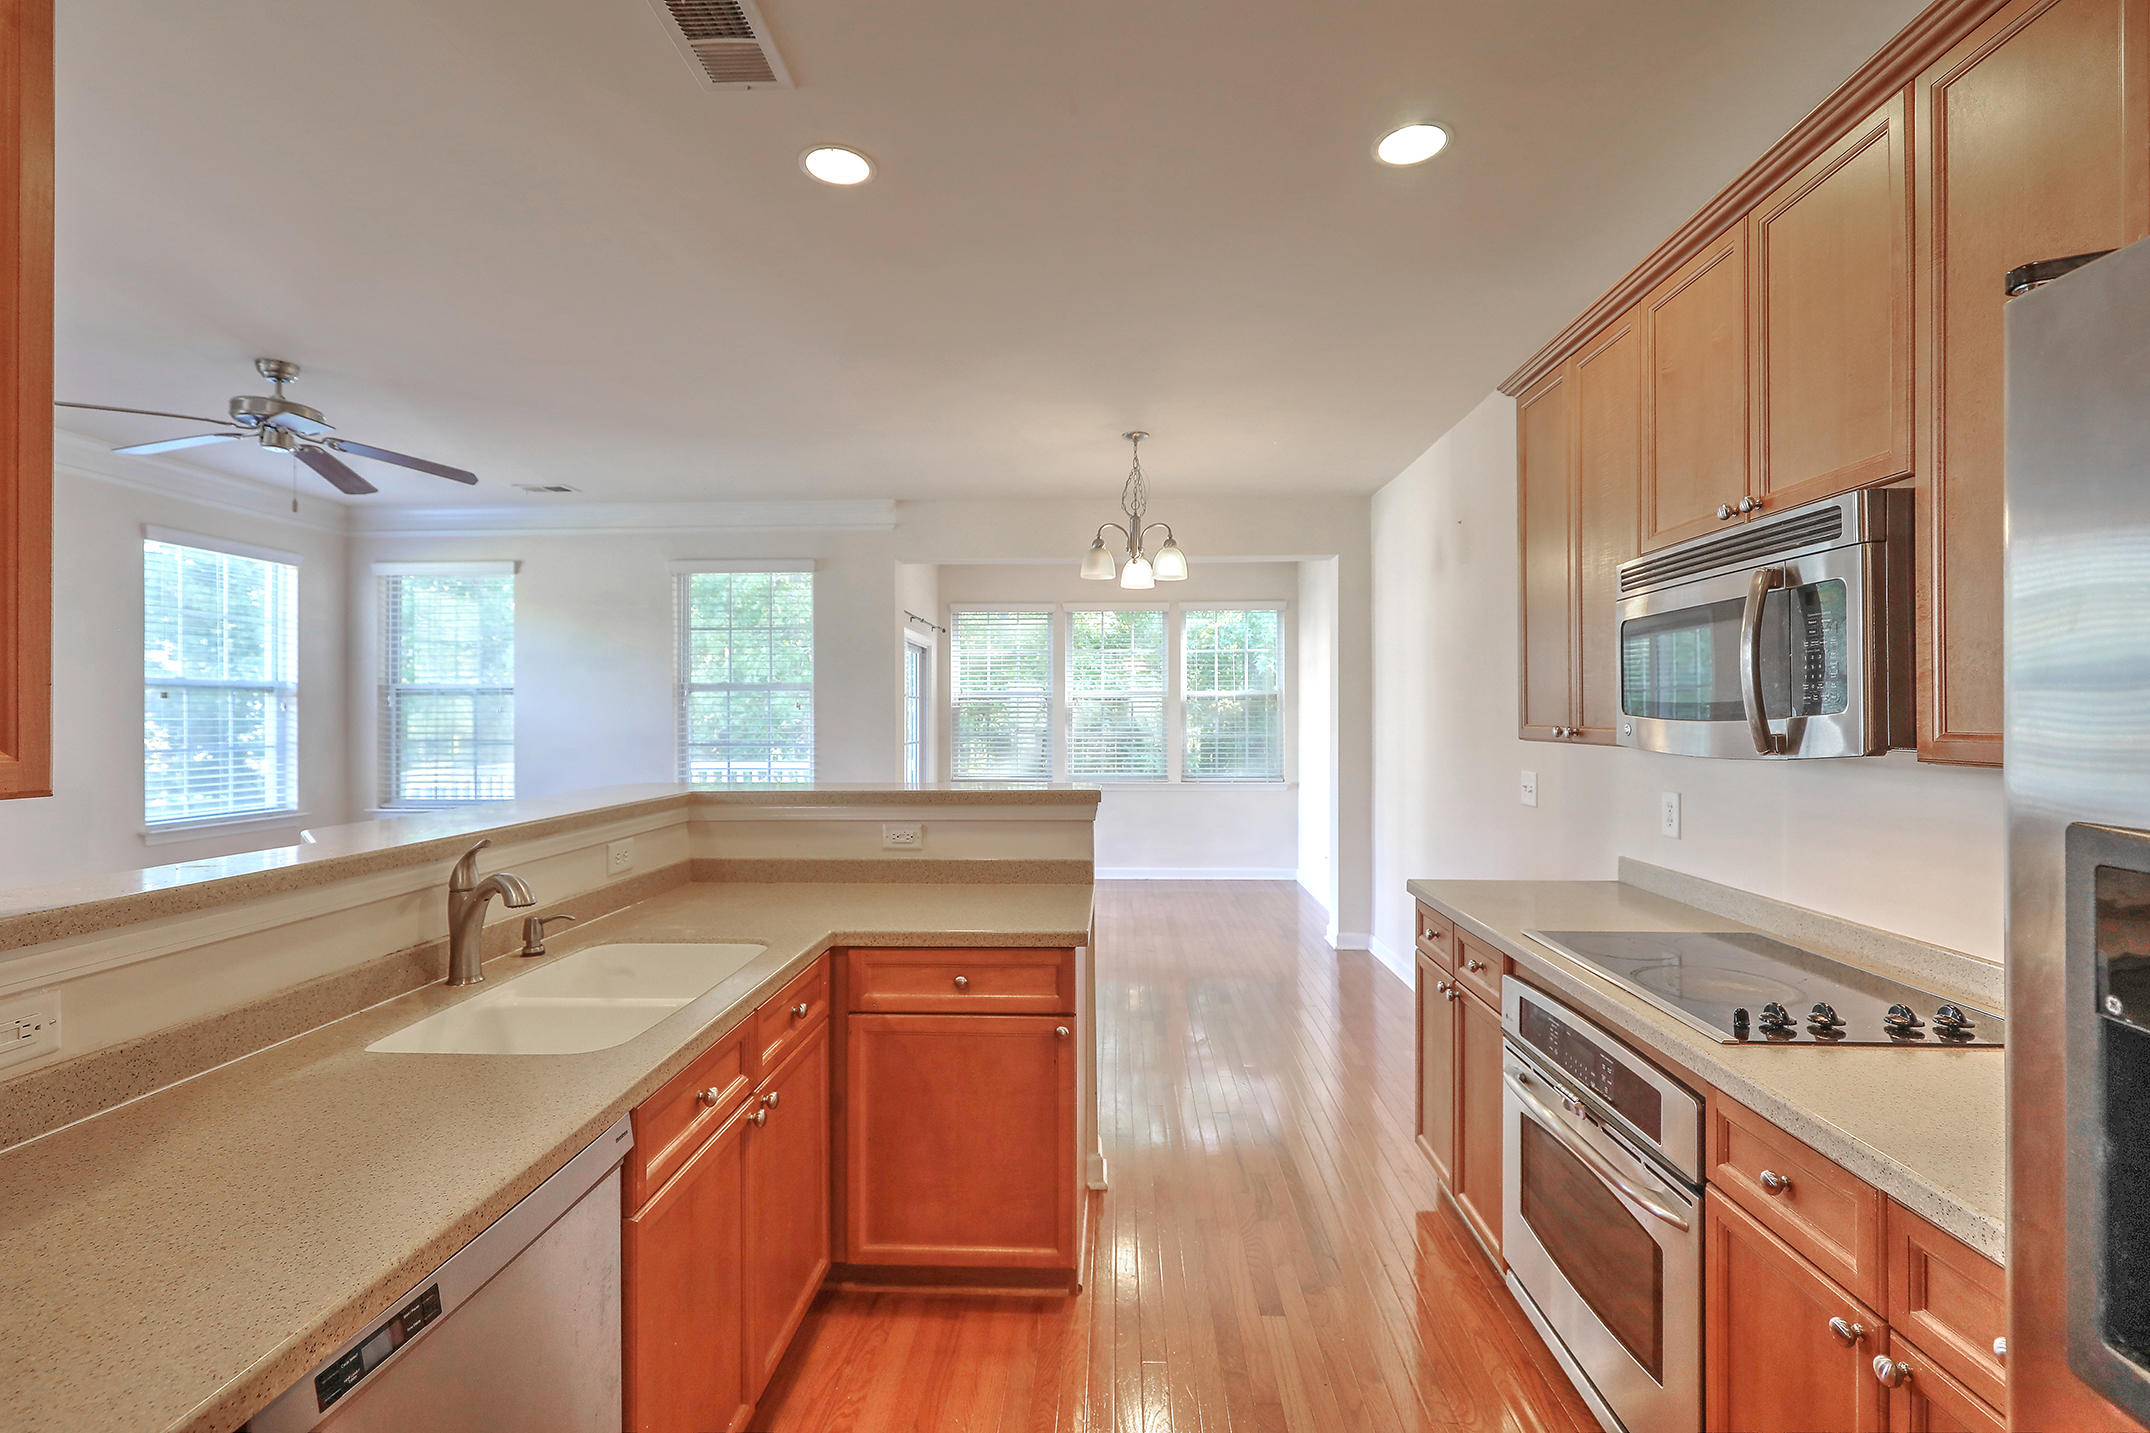 Kensington at Park West Homes For Sale - 3471 Claremont, Mount Pleasant, SC - 15